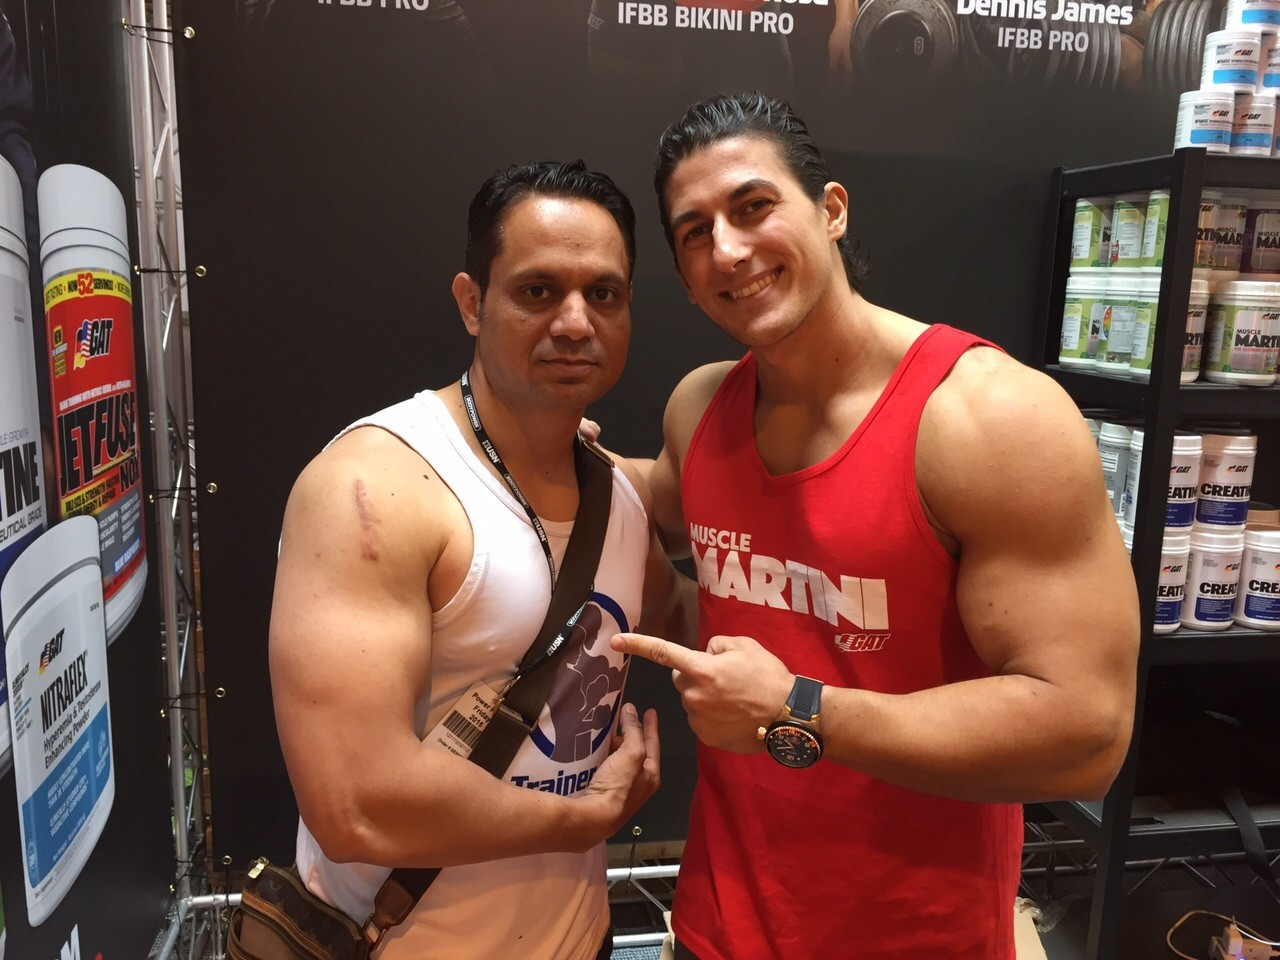 the largest fitness expo in the world